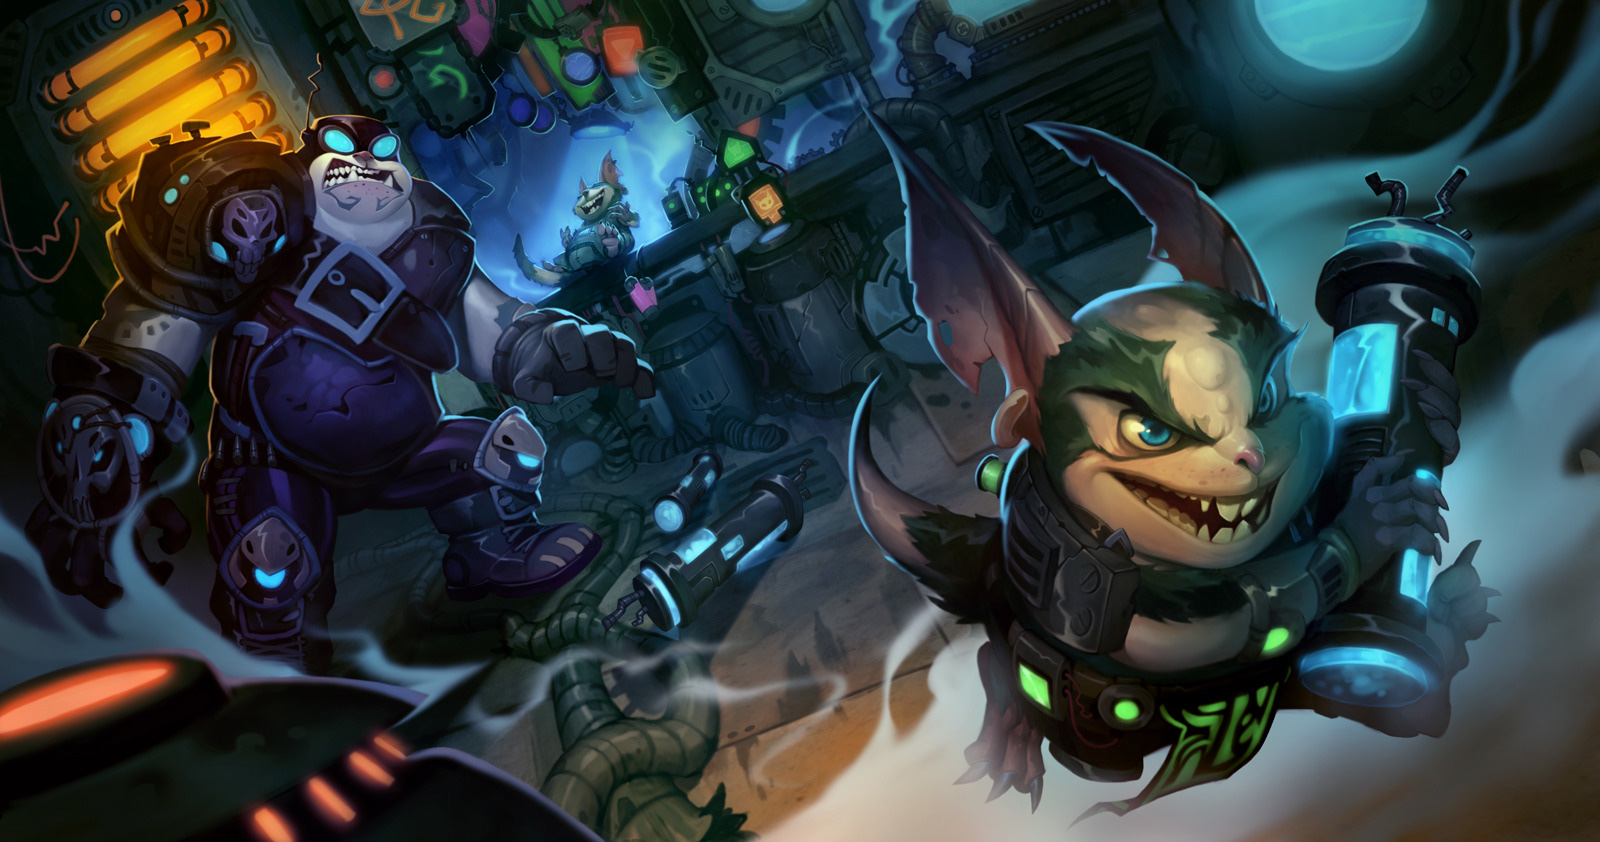 wildstar artwork